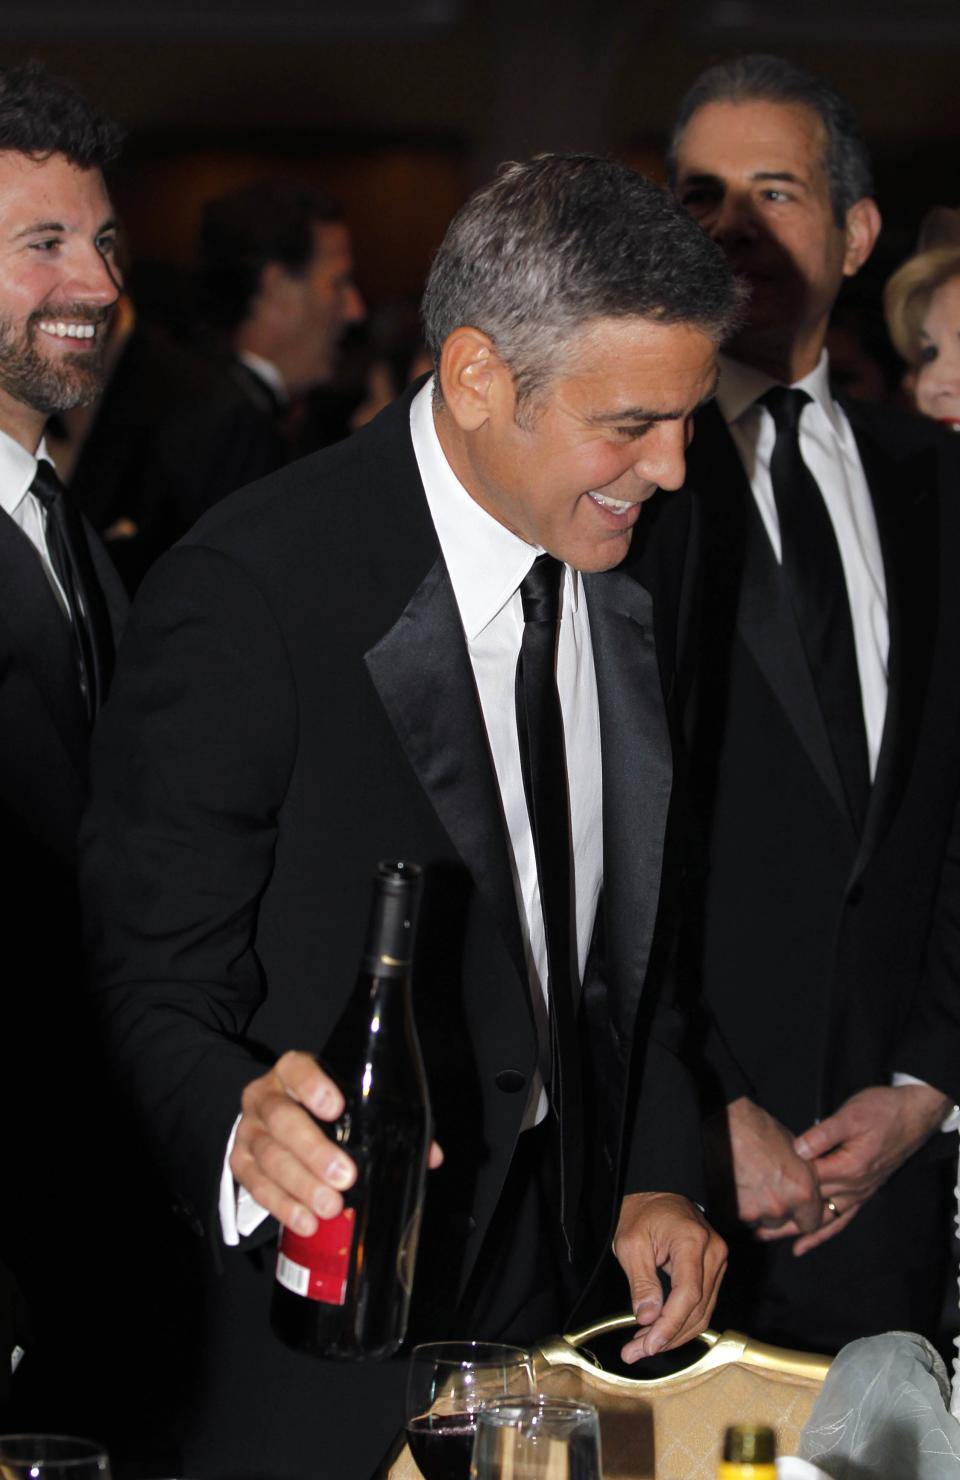 George Clooney attends the White House Correspondents' Association Dinner headlined by late-night comic Jimmy Kimmel, Saturday, April 28, 2012 in Washington. (AP Photo/Haraz N. Ghanbari)